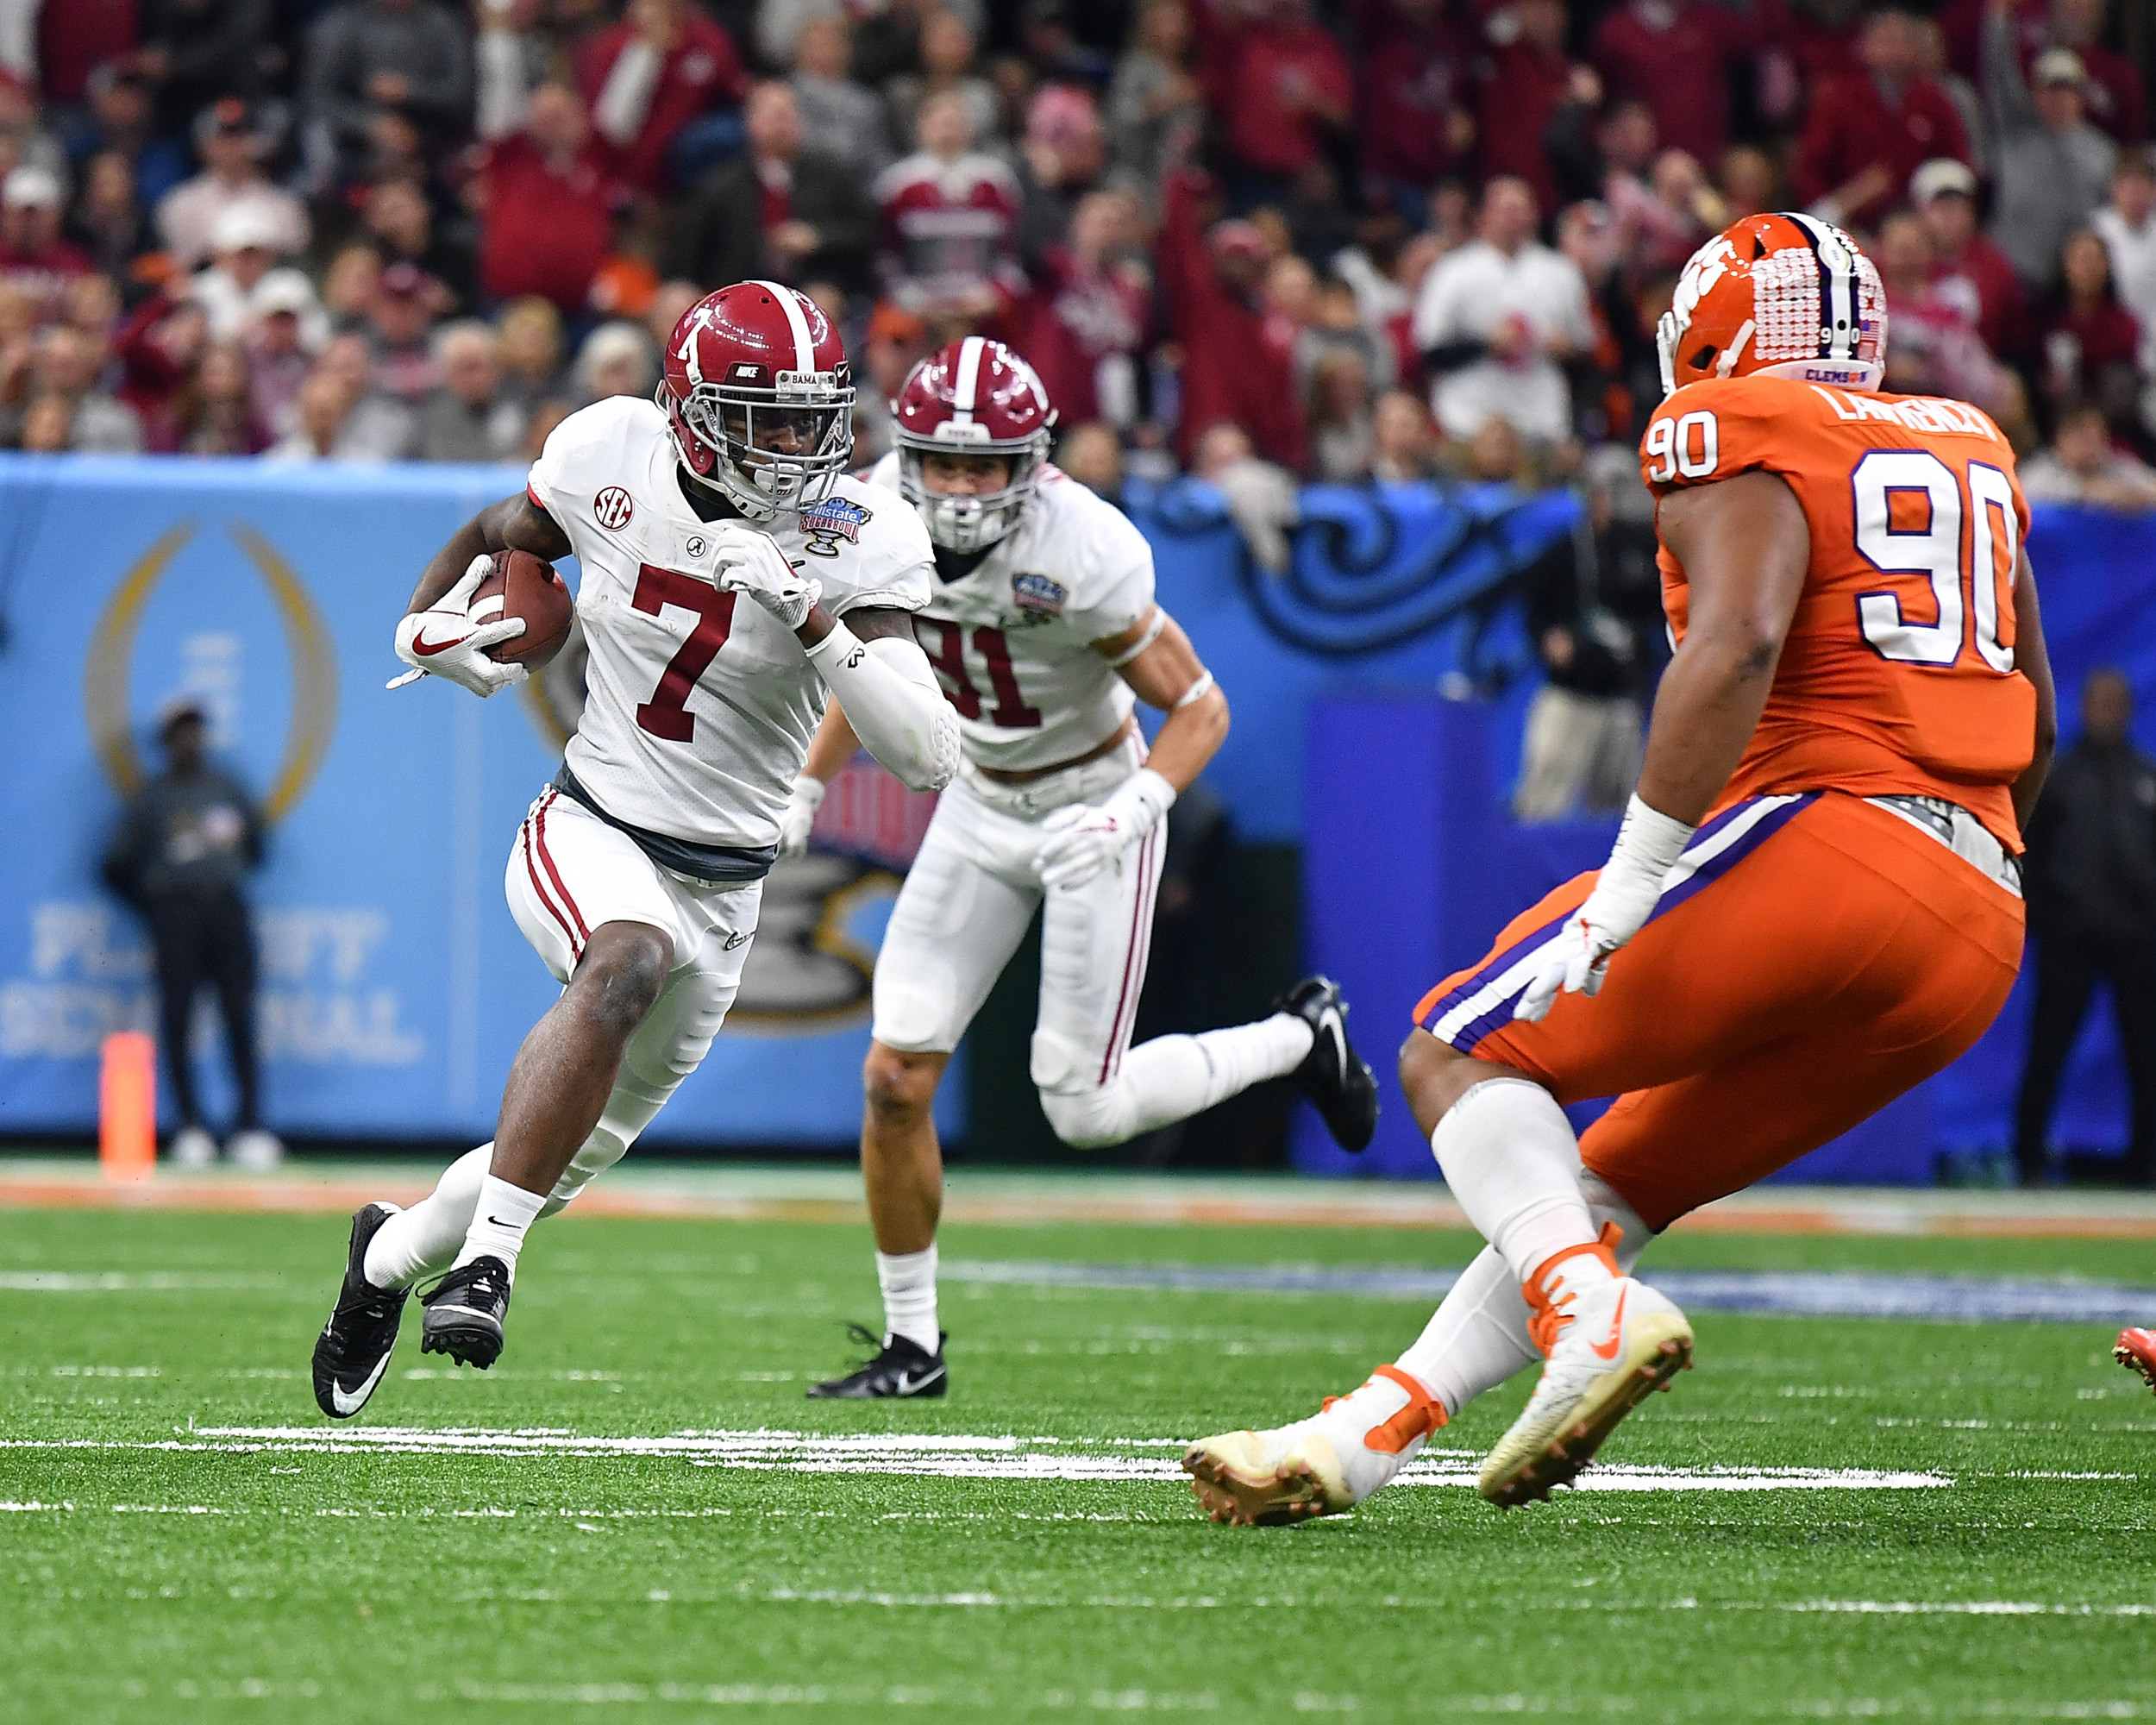 Alabama Crimson Tide defensive back Trevon Diggs (7) on a punt return in the first half of the 2018 AllState Sugar Bowl on Jan. 1, 2018, at the Mercedes-Benz SuperDome in New Orleans, La. Alabama won the game 24-6. (Photo by Lee Walls)